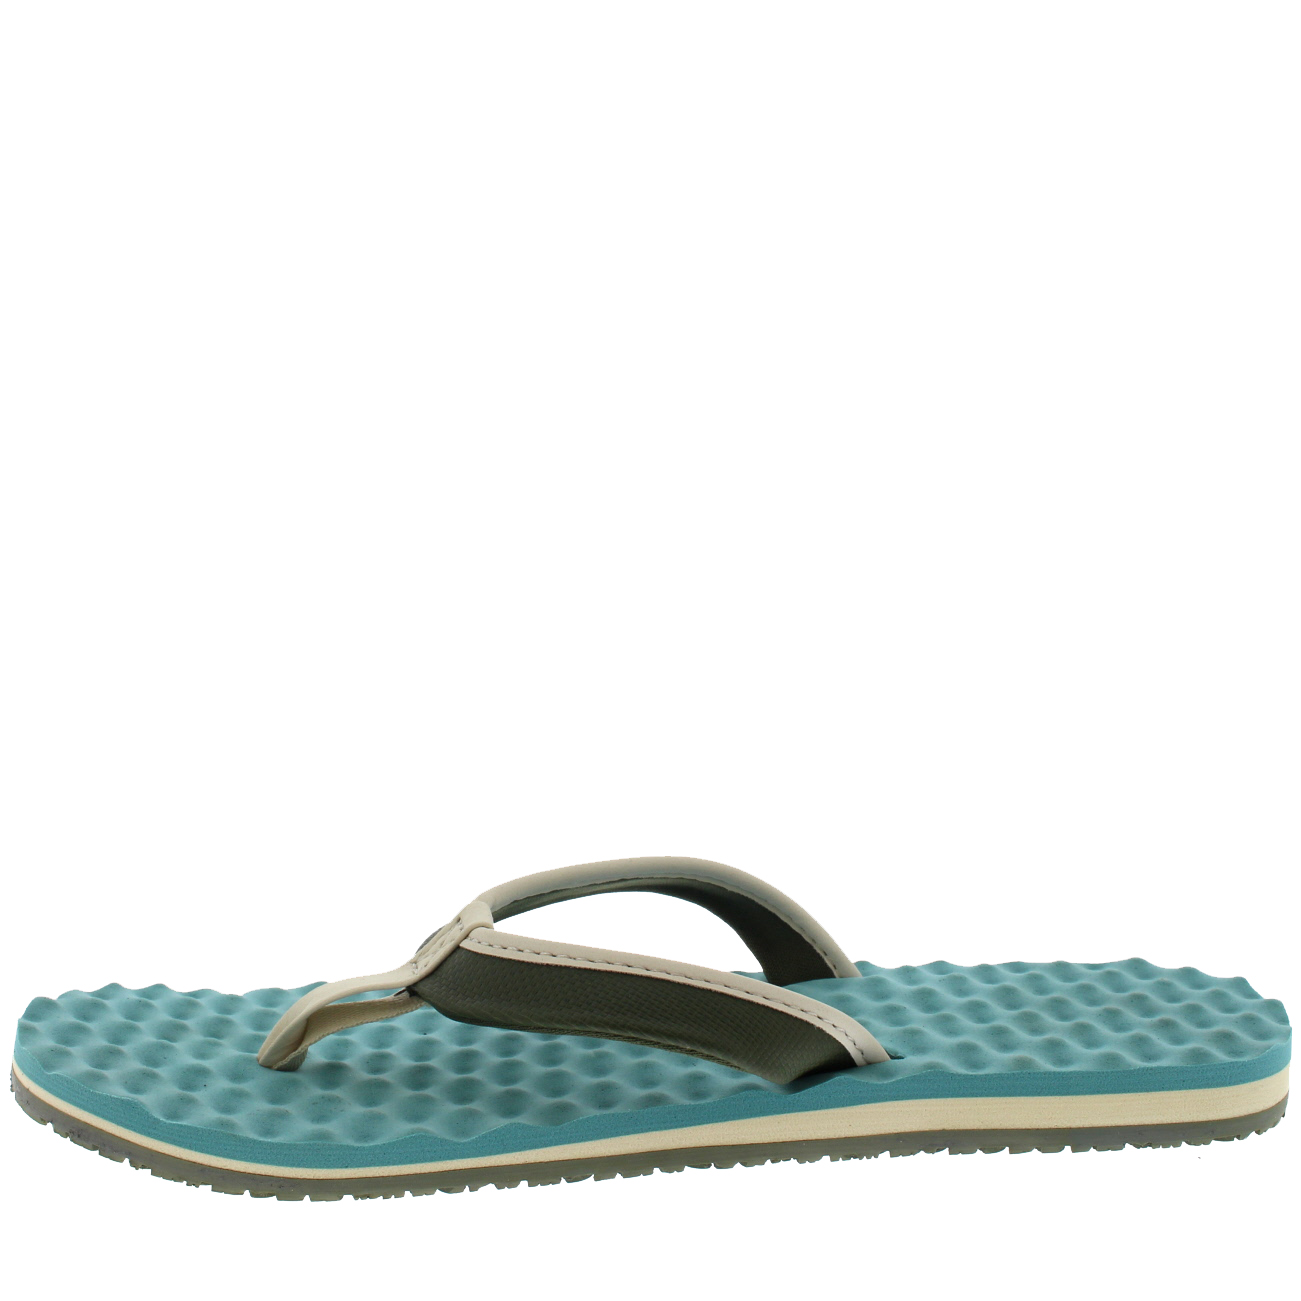 1e4c0ff48 Details about Ladies The North Face Base Camp Mini Toe Post Thong Holiday  Sandals All Sizes